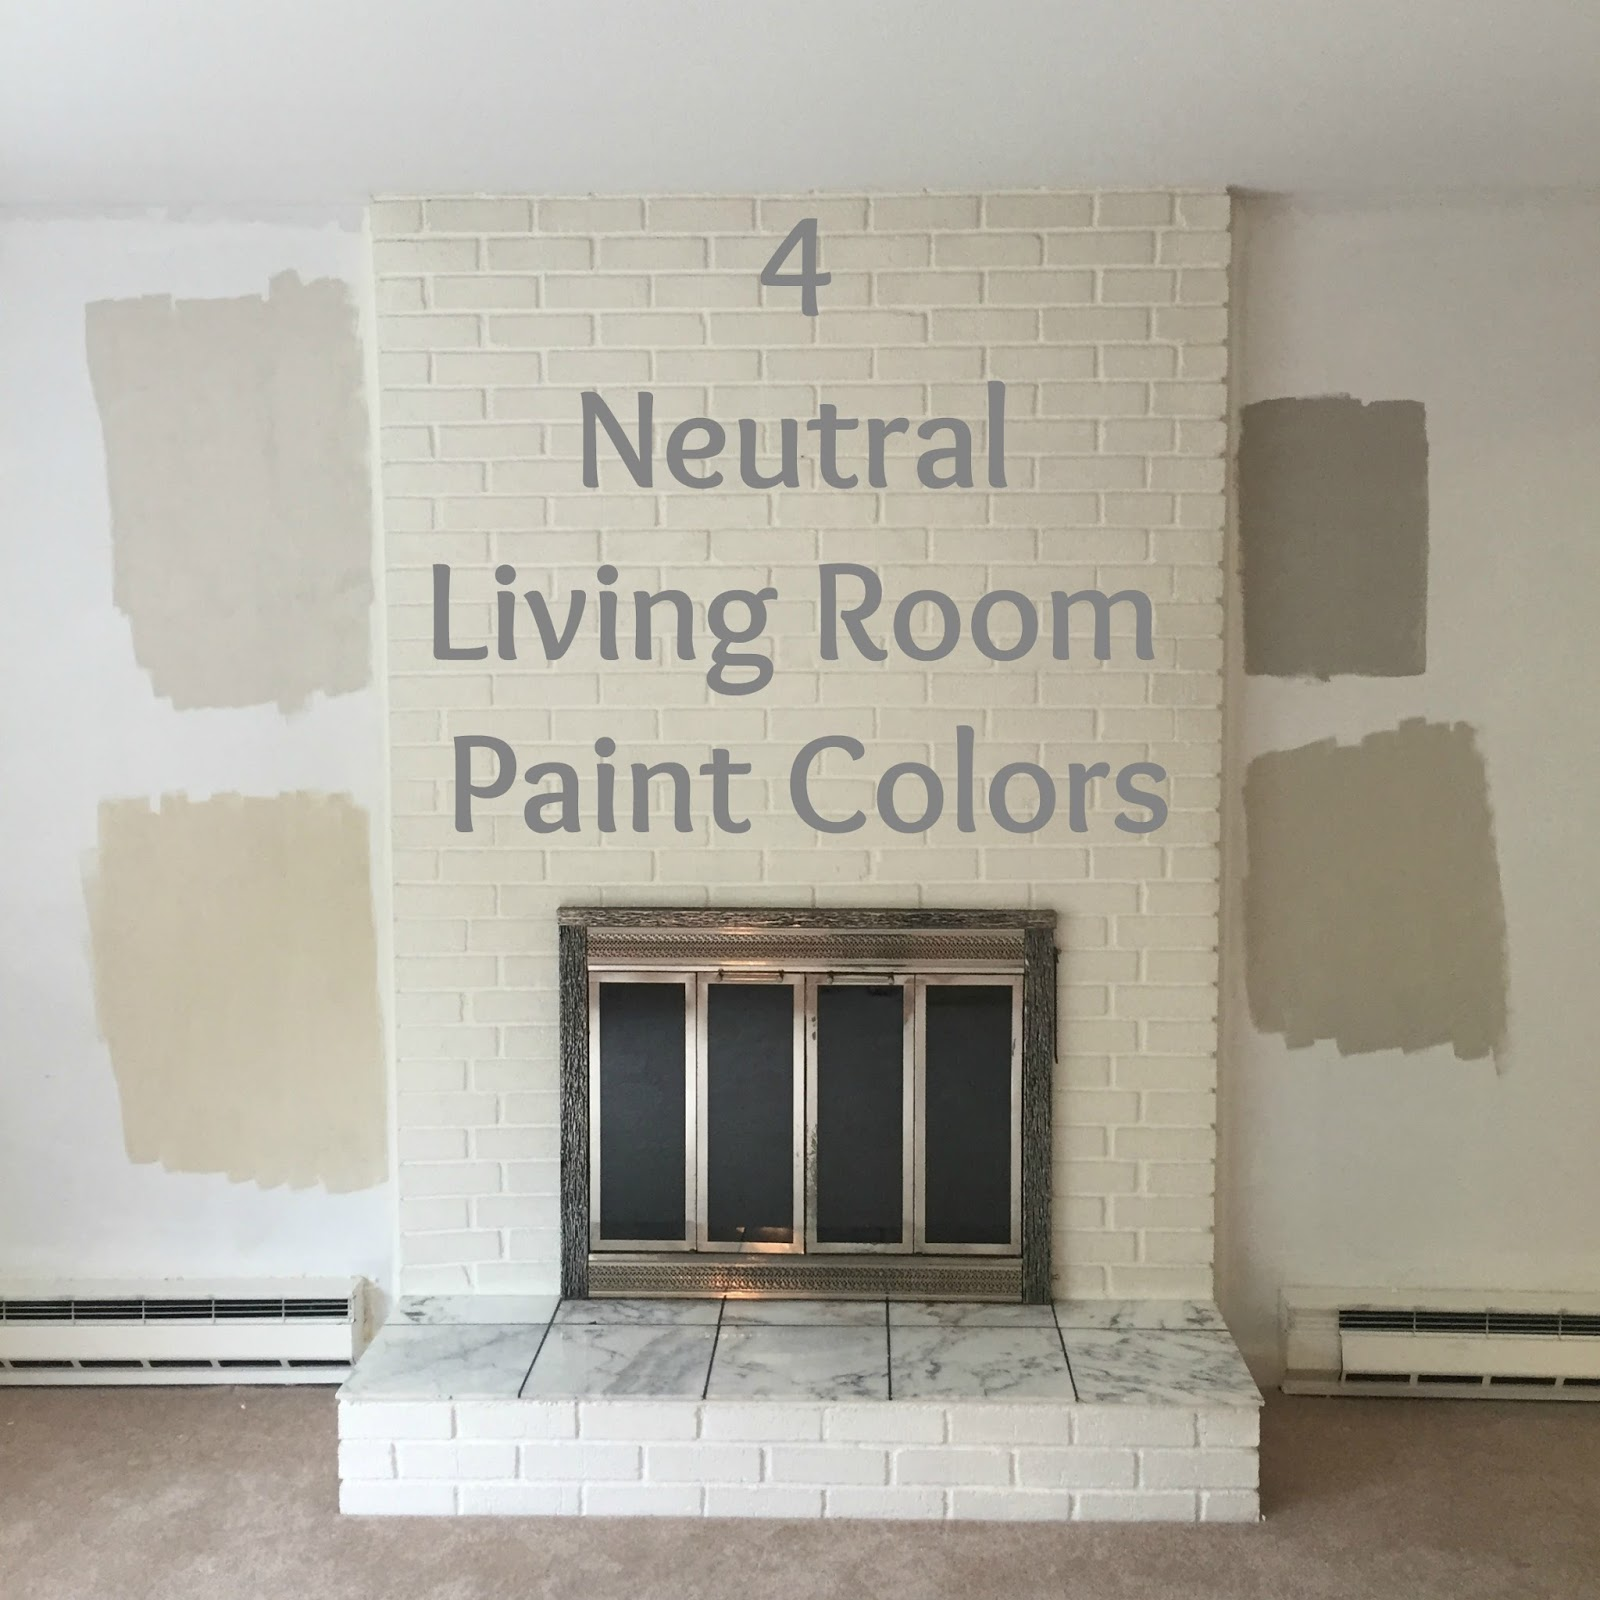 Drew danielle design 4 neutral living room paint colors for Grey and neutral living room